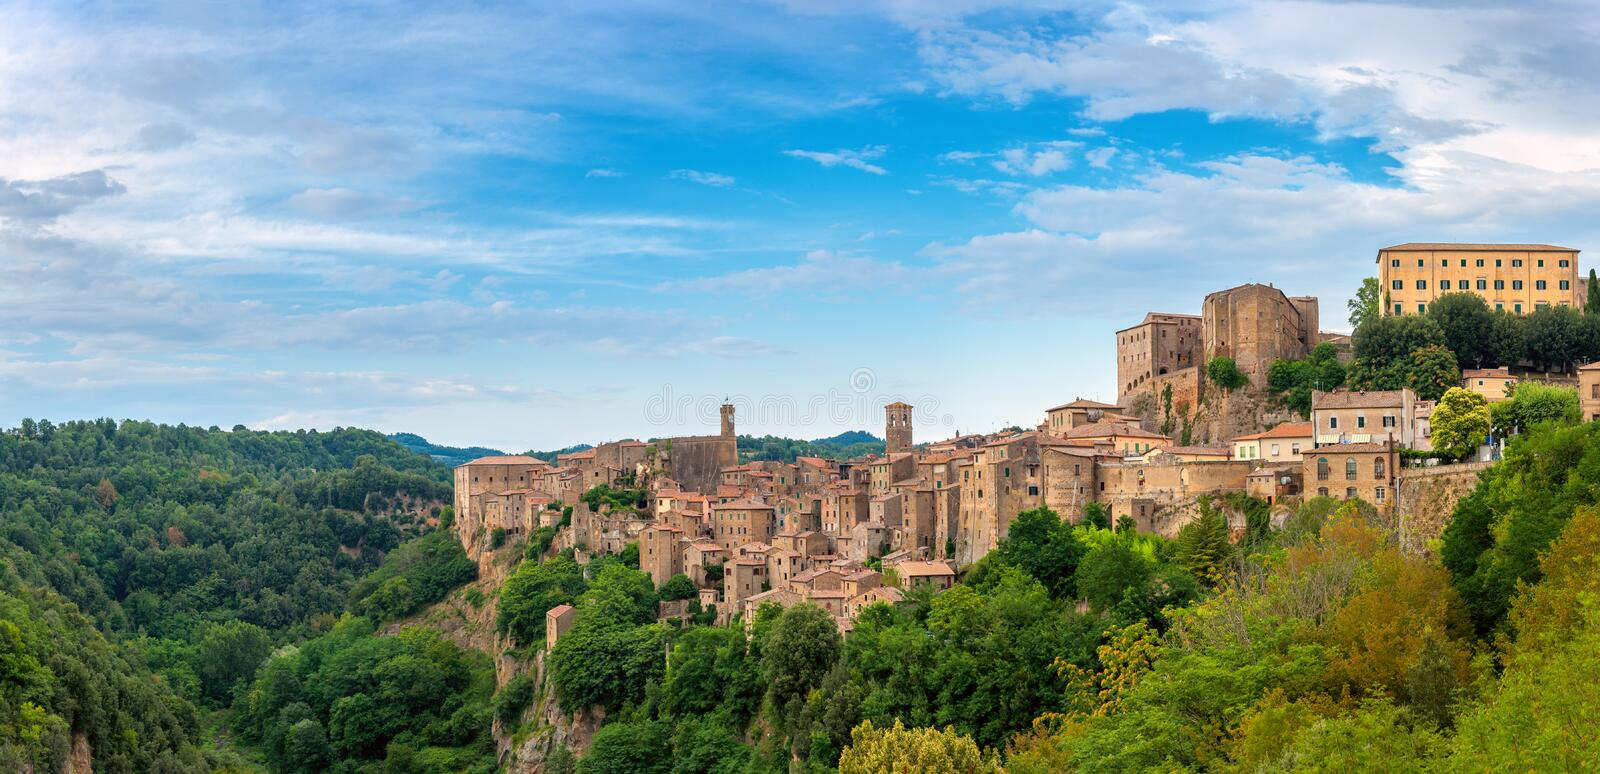 Panorama of the picturesque medieval village of Sorano located on a hill stock photography